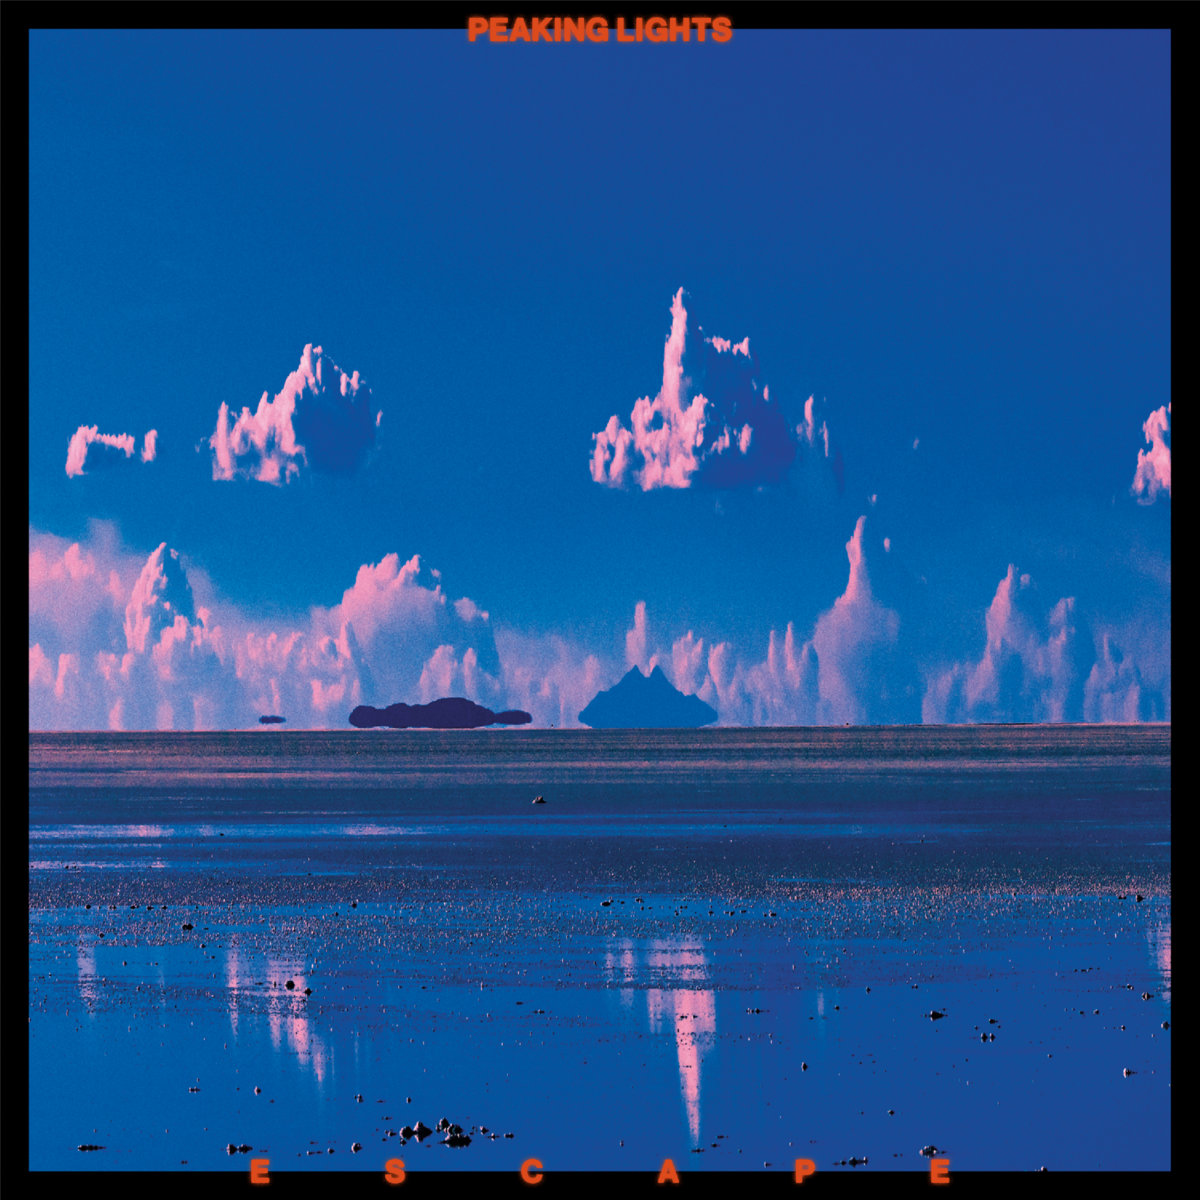 Peaking Lights cover image